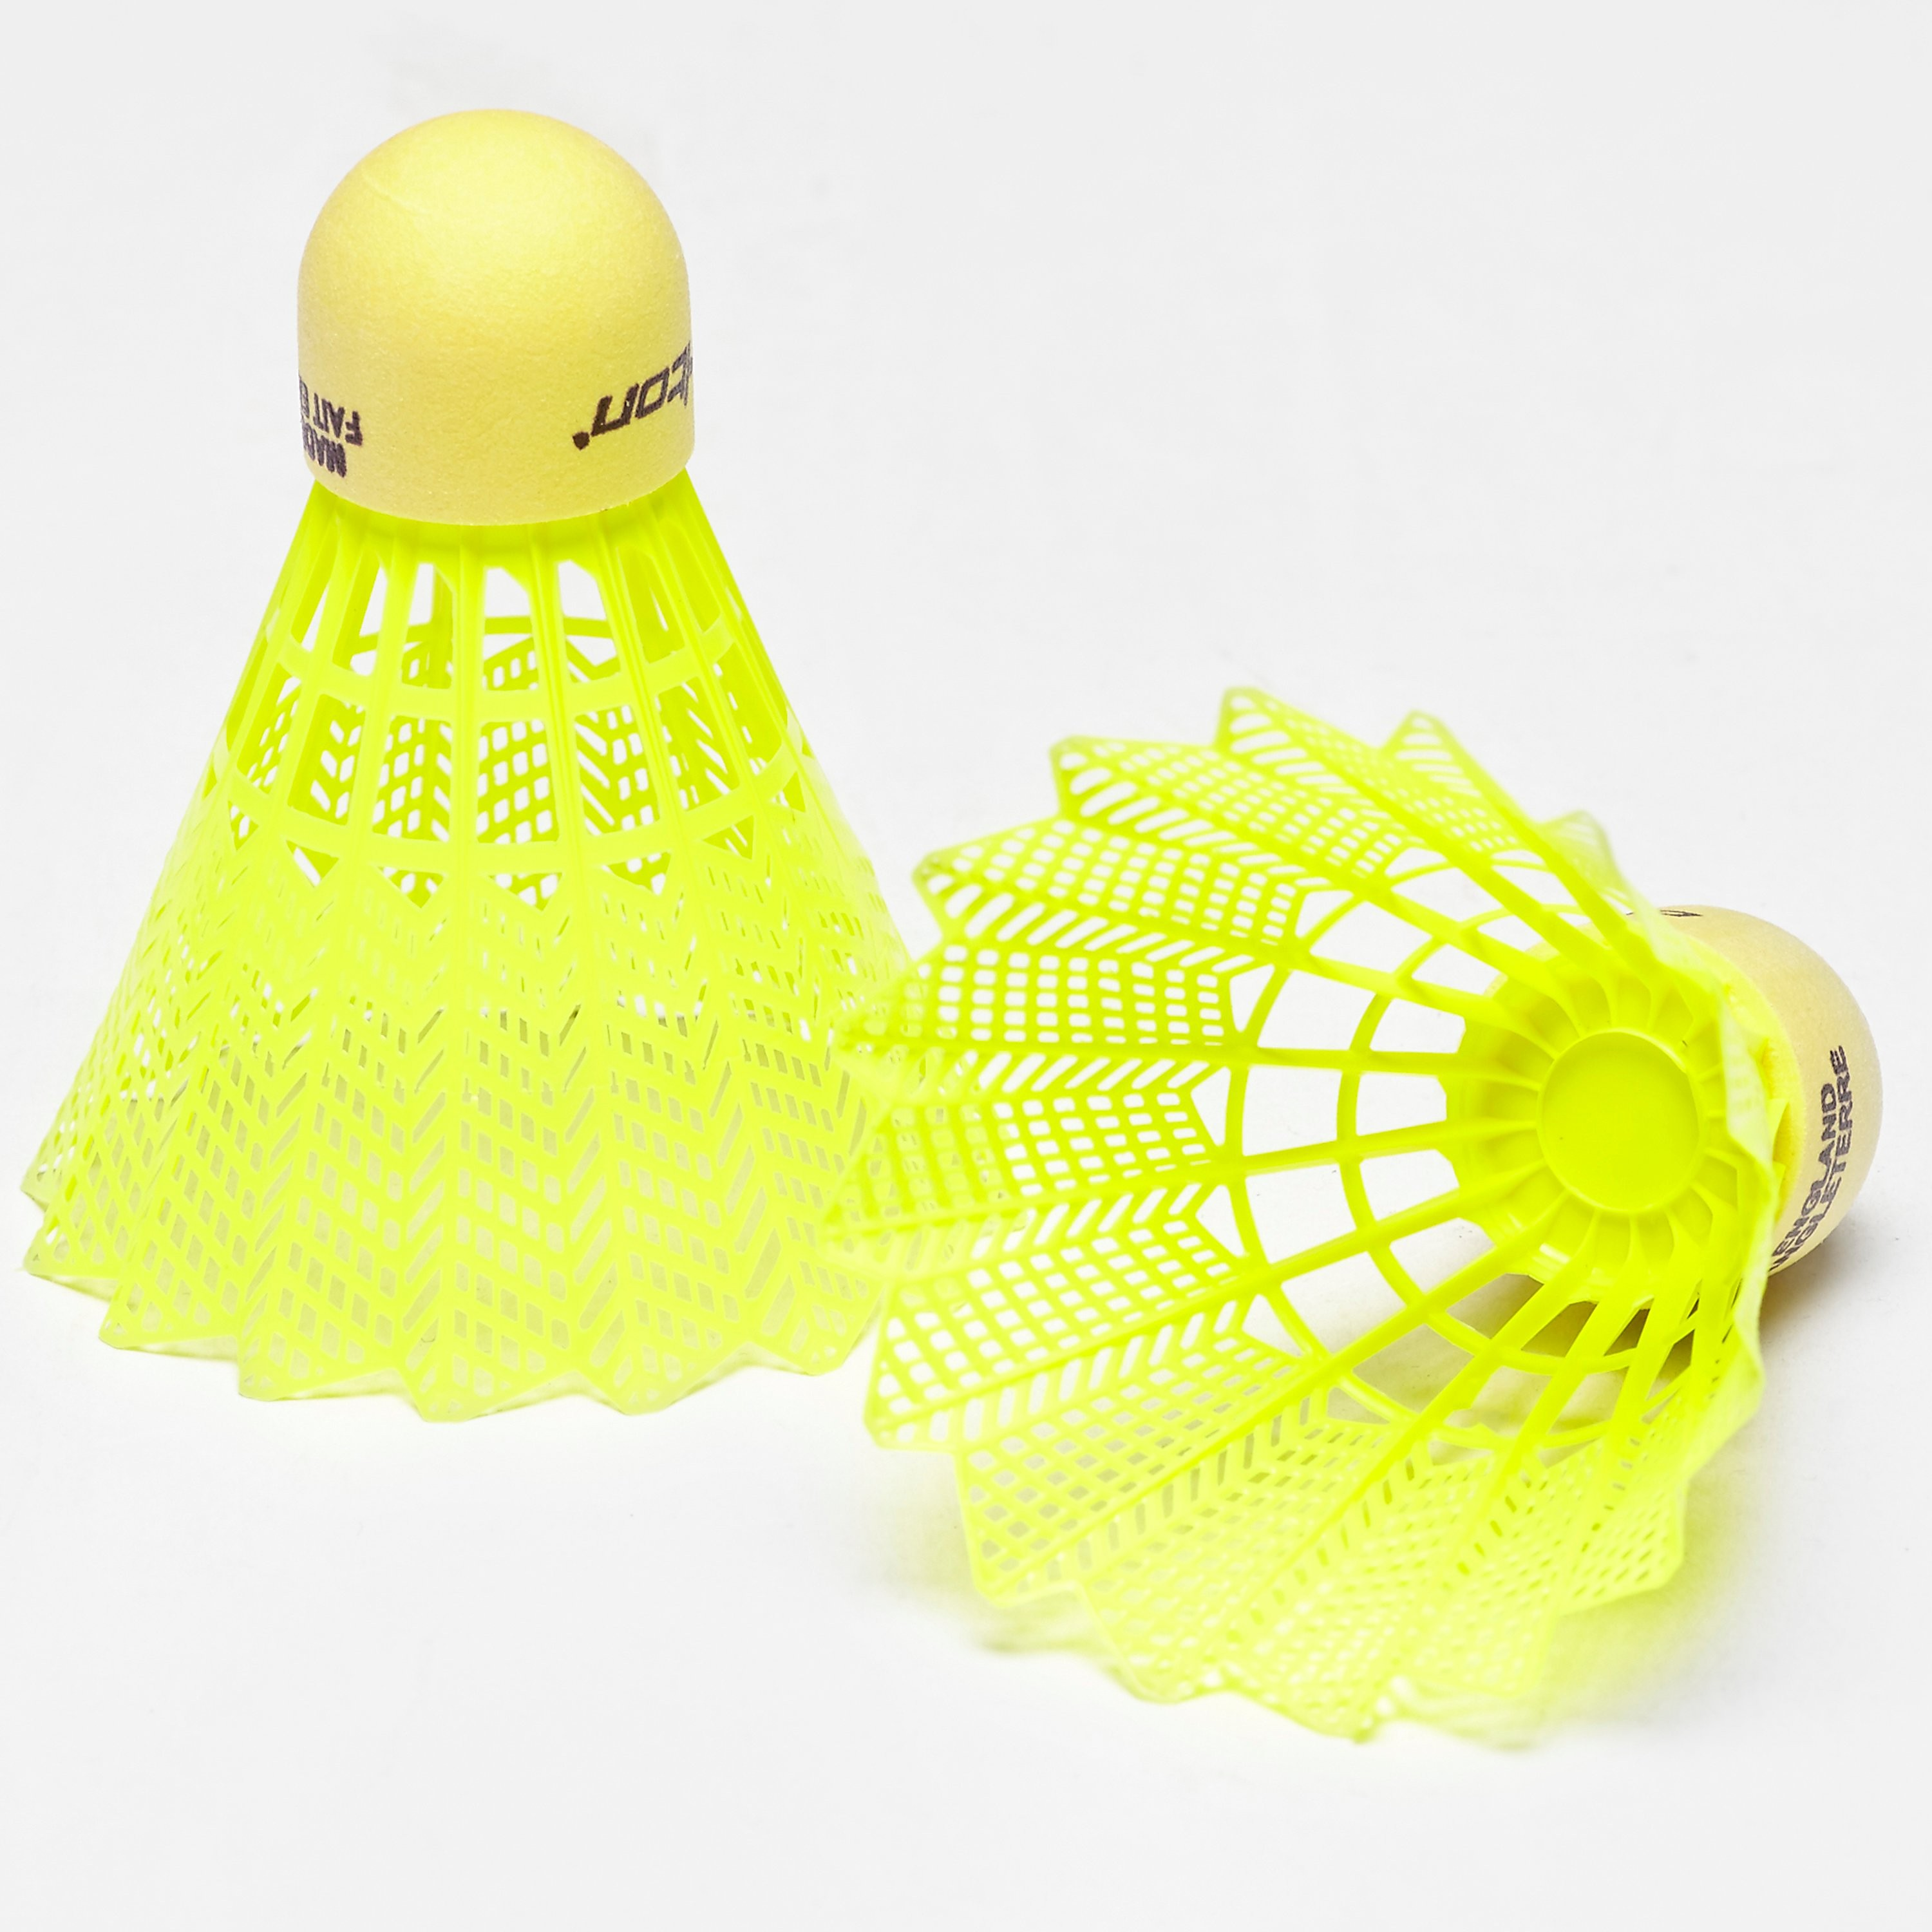 Carlton T800-Yellow Badminton Shuttlecocks -